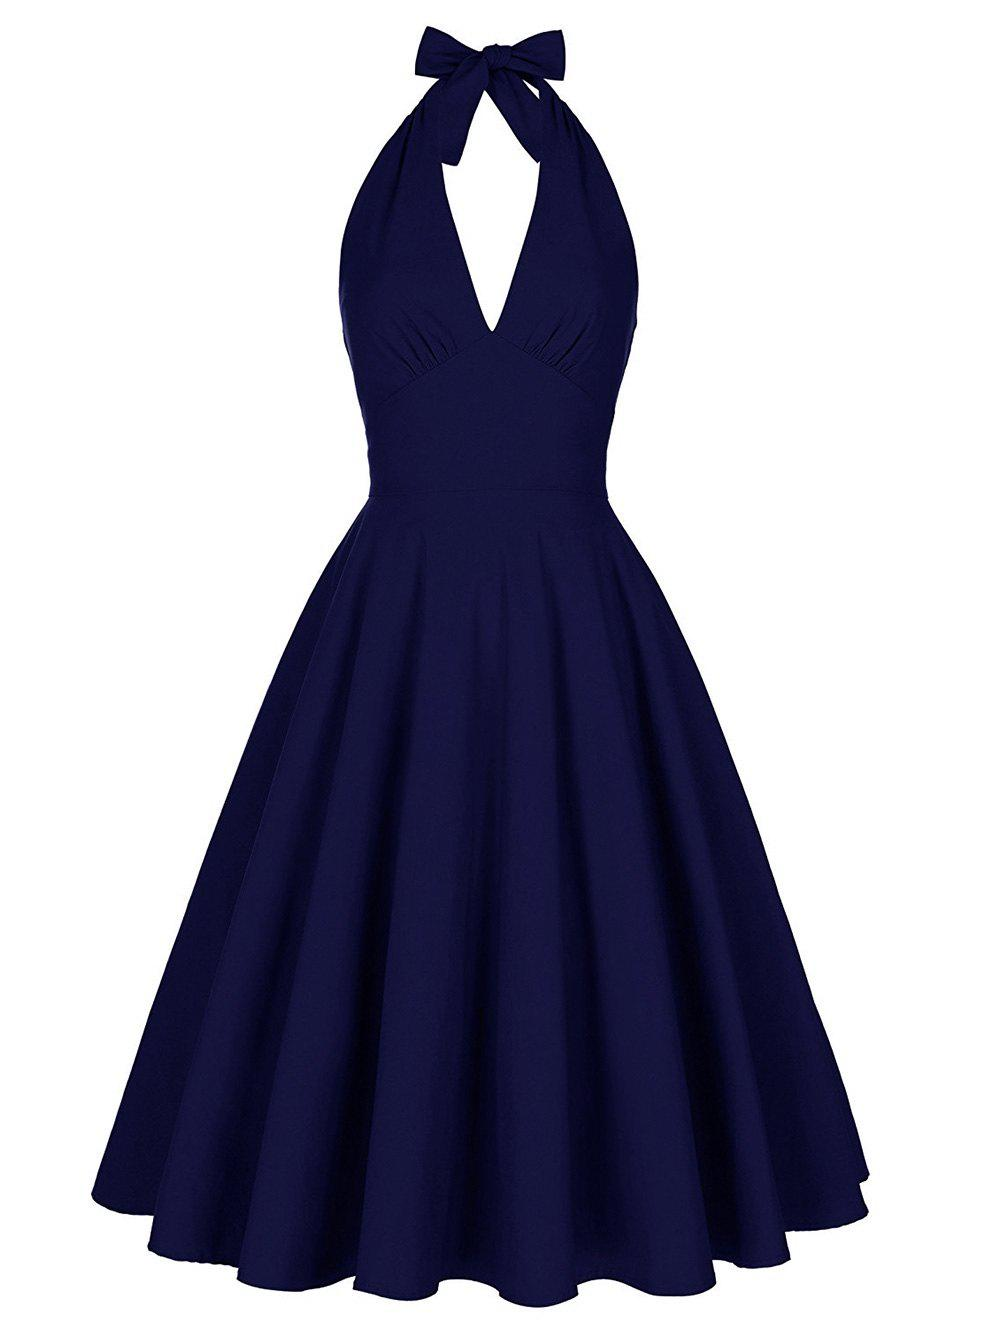 Backless Plunge Halter Vintage Skater Club Dress - PURPLISH BLUE L